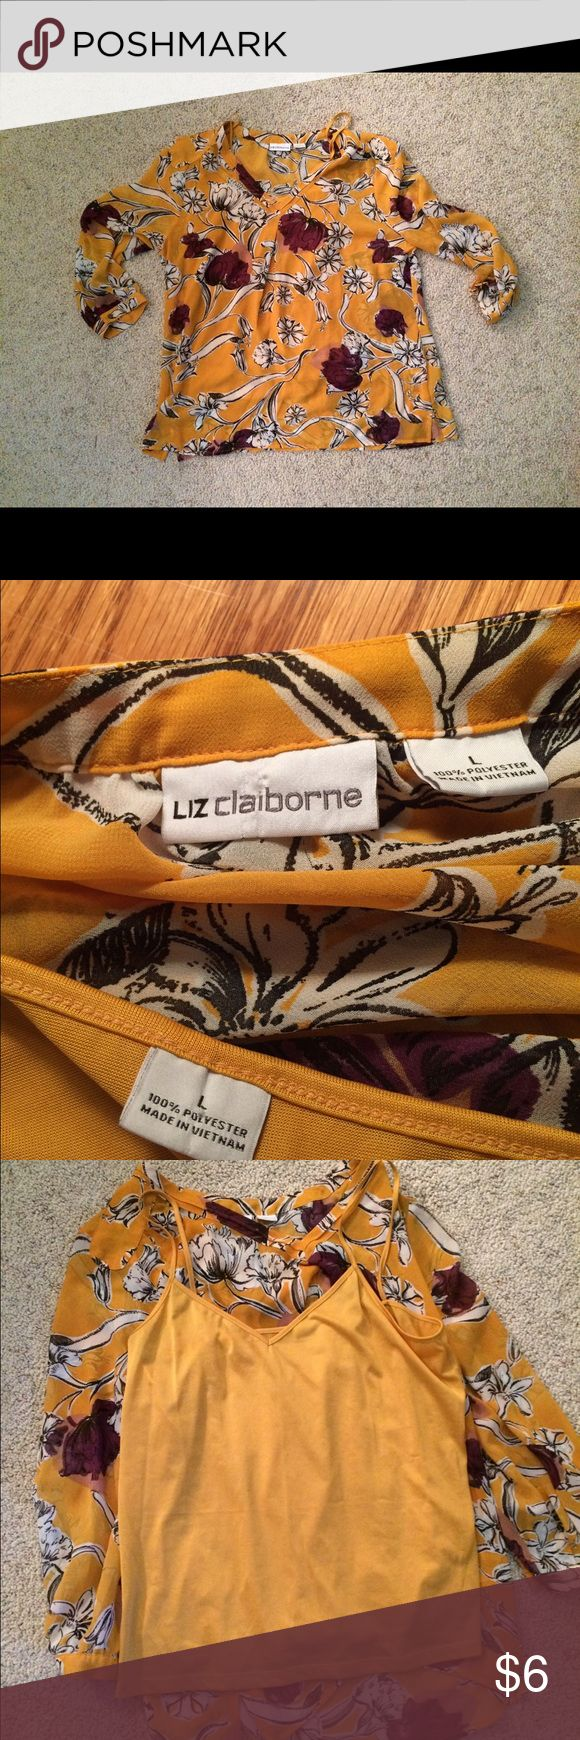 Liz Claiborne Combo (Tank&Top) Yellow tank with yellow & purple flowers outer sheer shirt. These colors look sharp together & this is a shirt you can wear all seasons (just add a cardigan) & for all occasions (work, casual, formal). Preowned worn once with no stains or issues. Liz Claiborne Tops Blouses